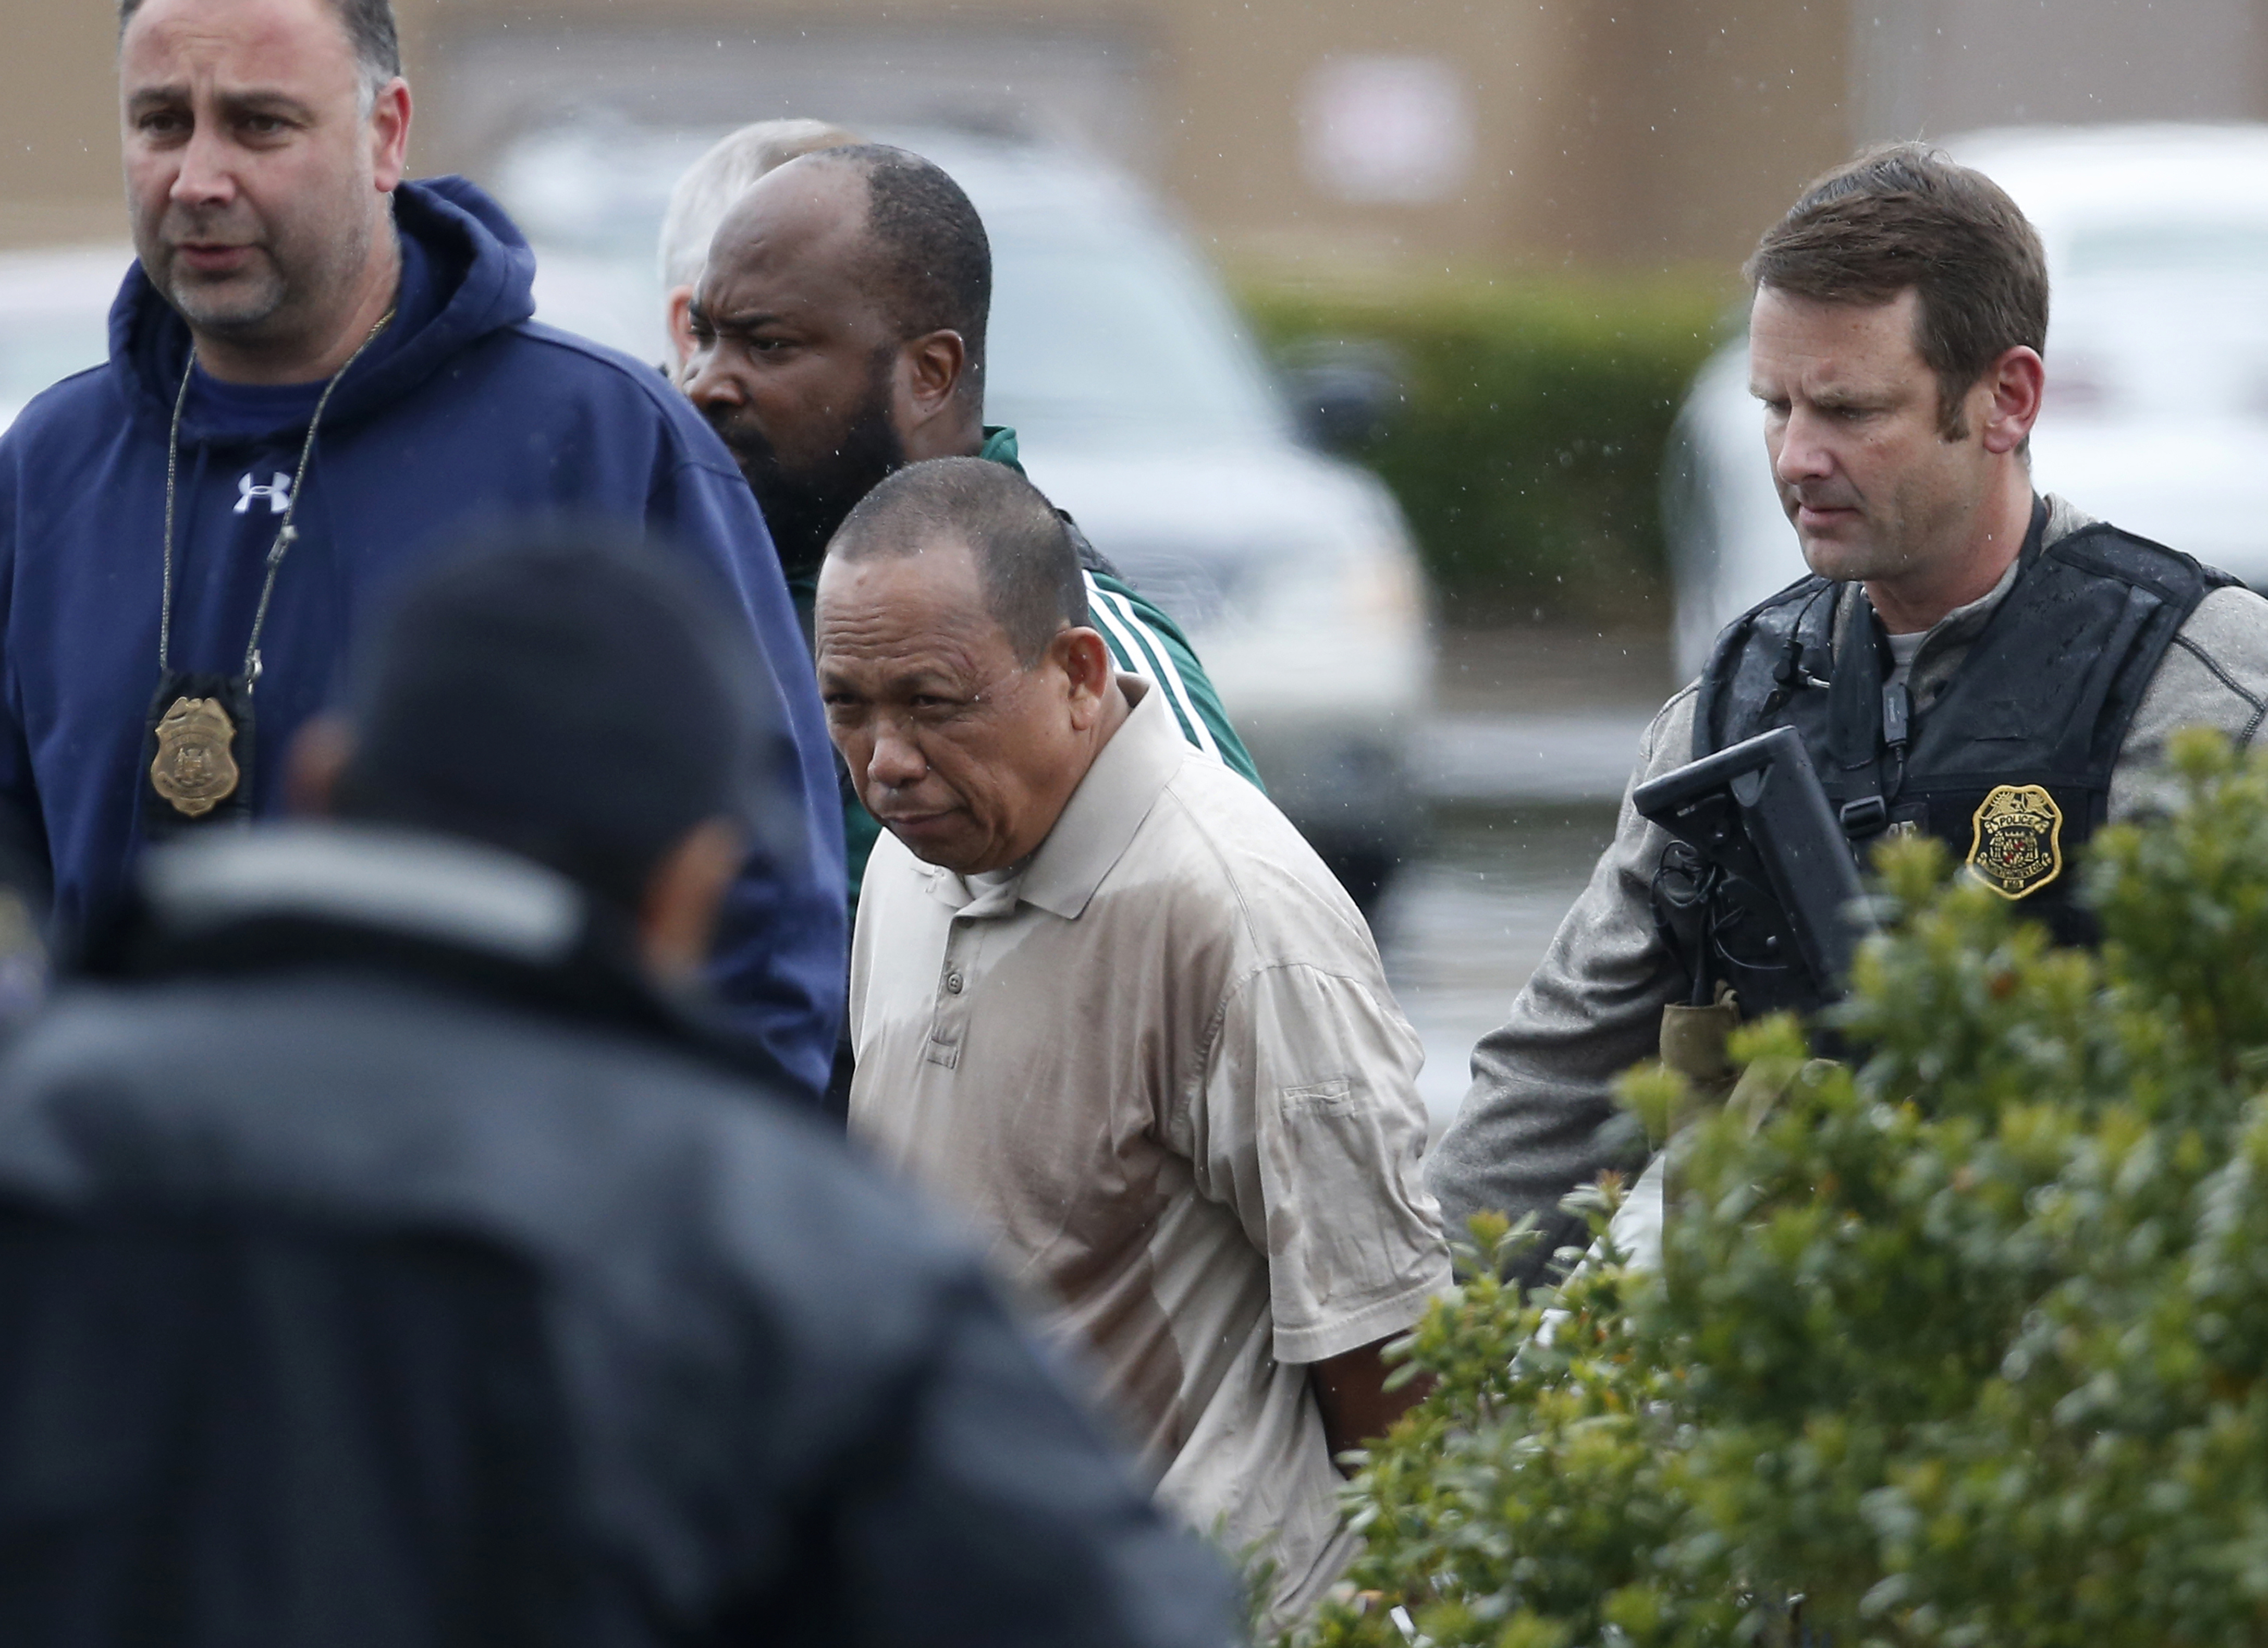 Guilty plea due in Maryland shooting spree, manhunt